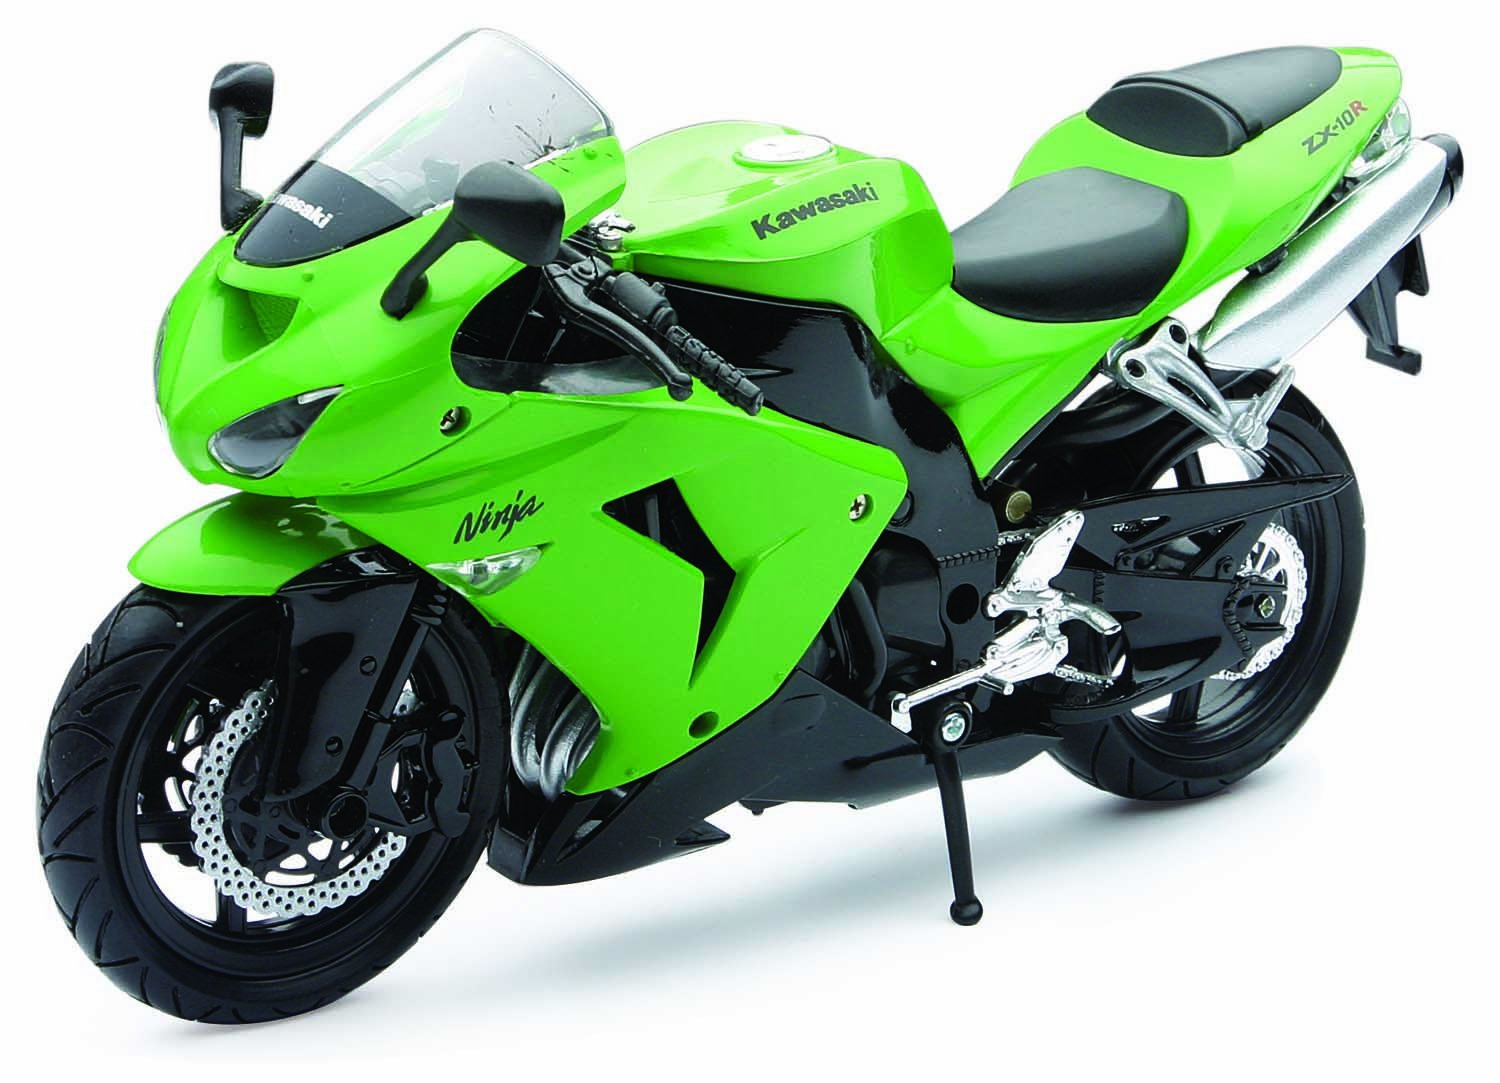 Amazon.com: NewRay 1:12 Motorcycle 2006 Kawasaki Zx-10R-Sport Bike ...